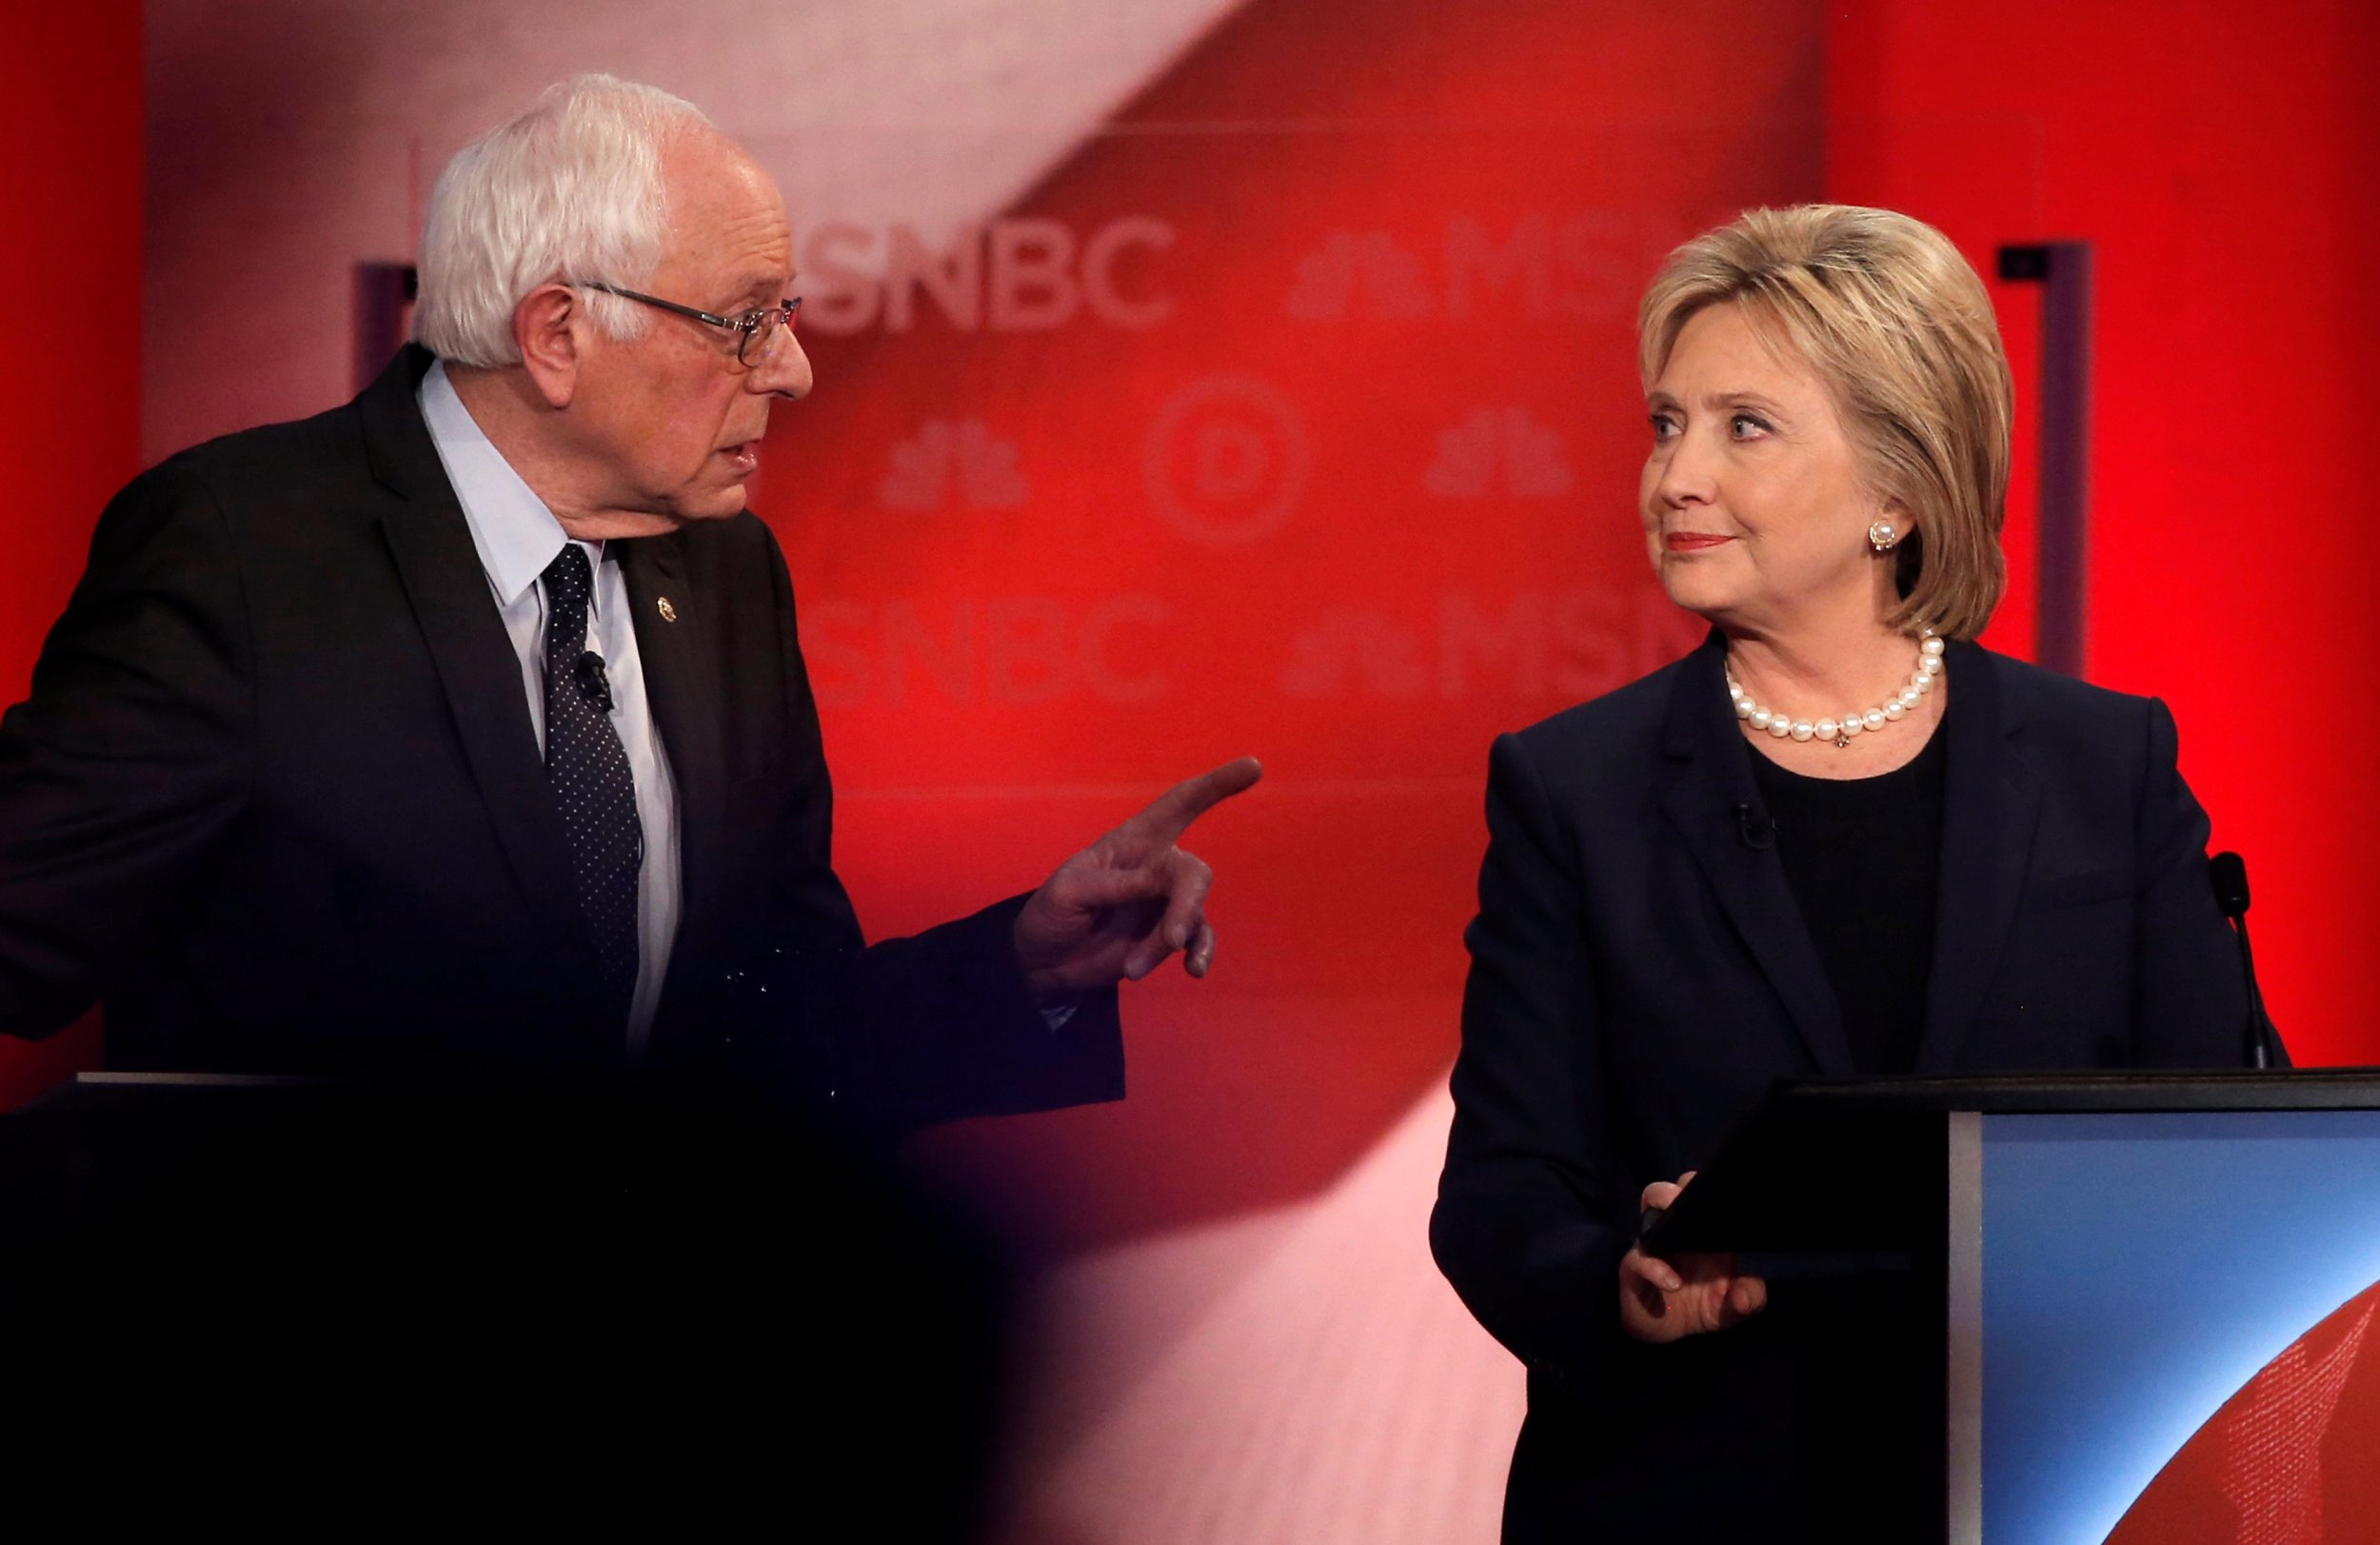 hillary clinton supporters filed a complaint against bernie sanders